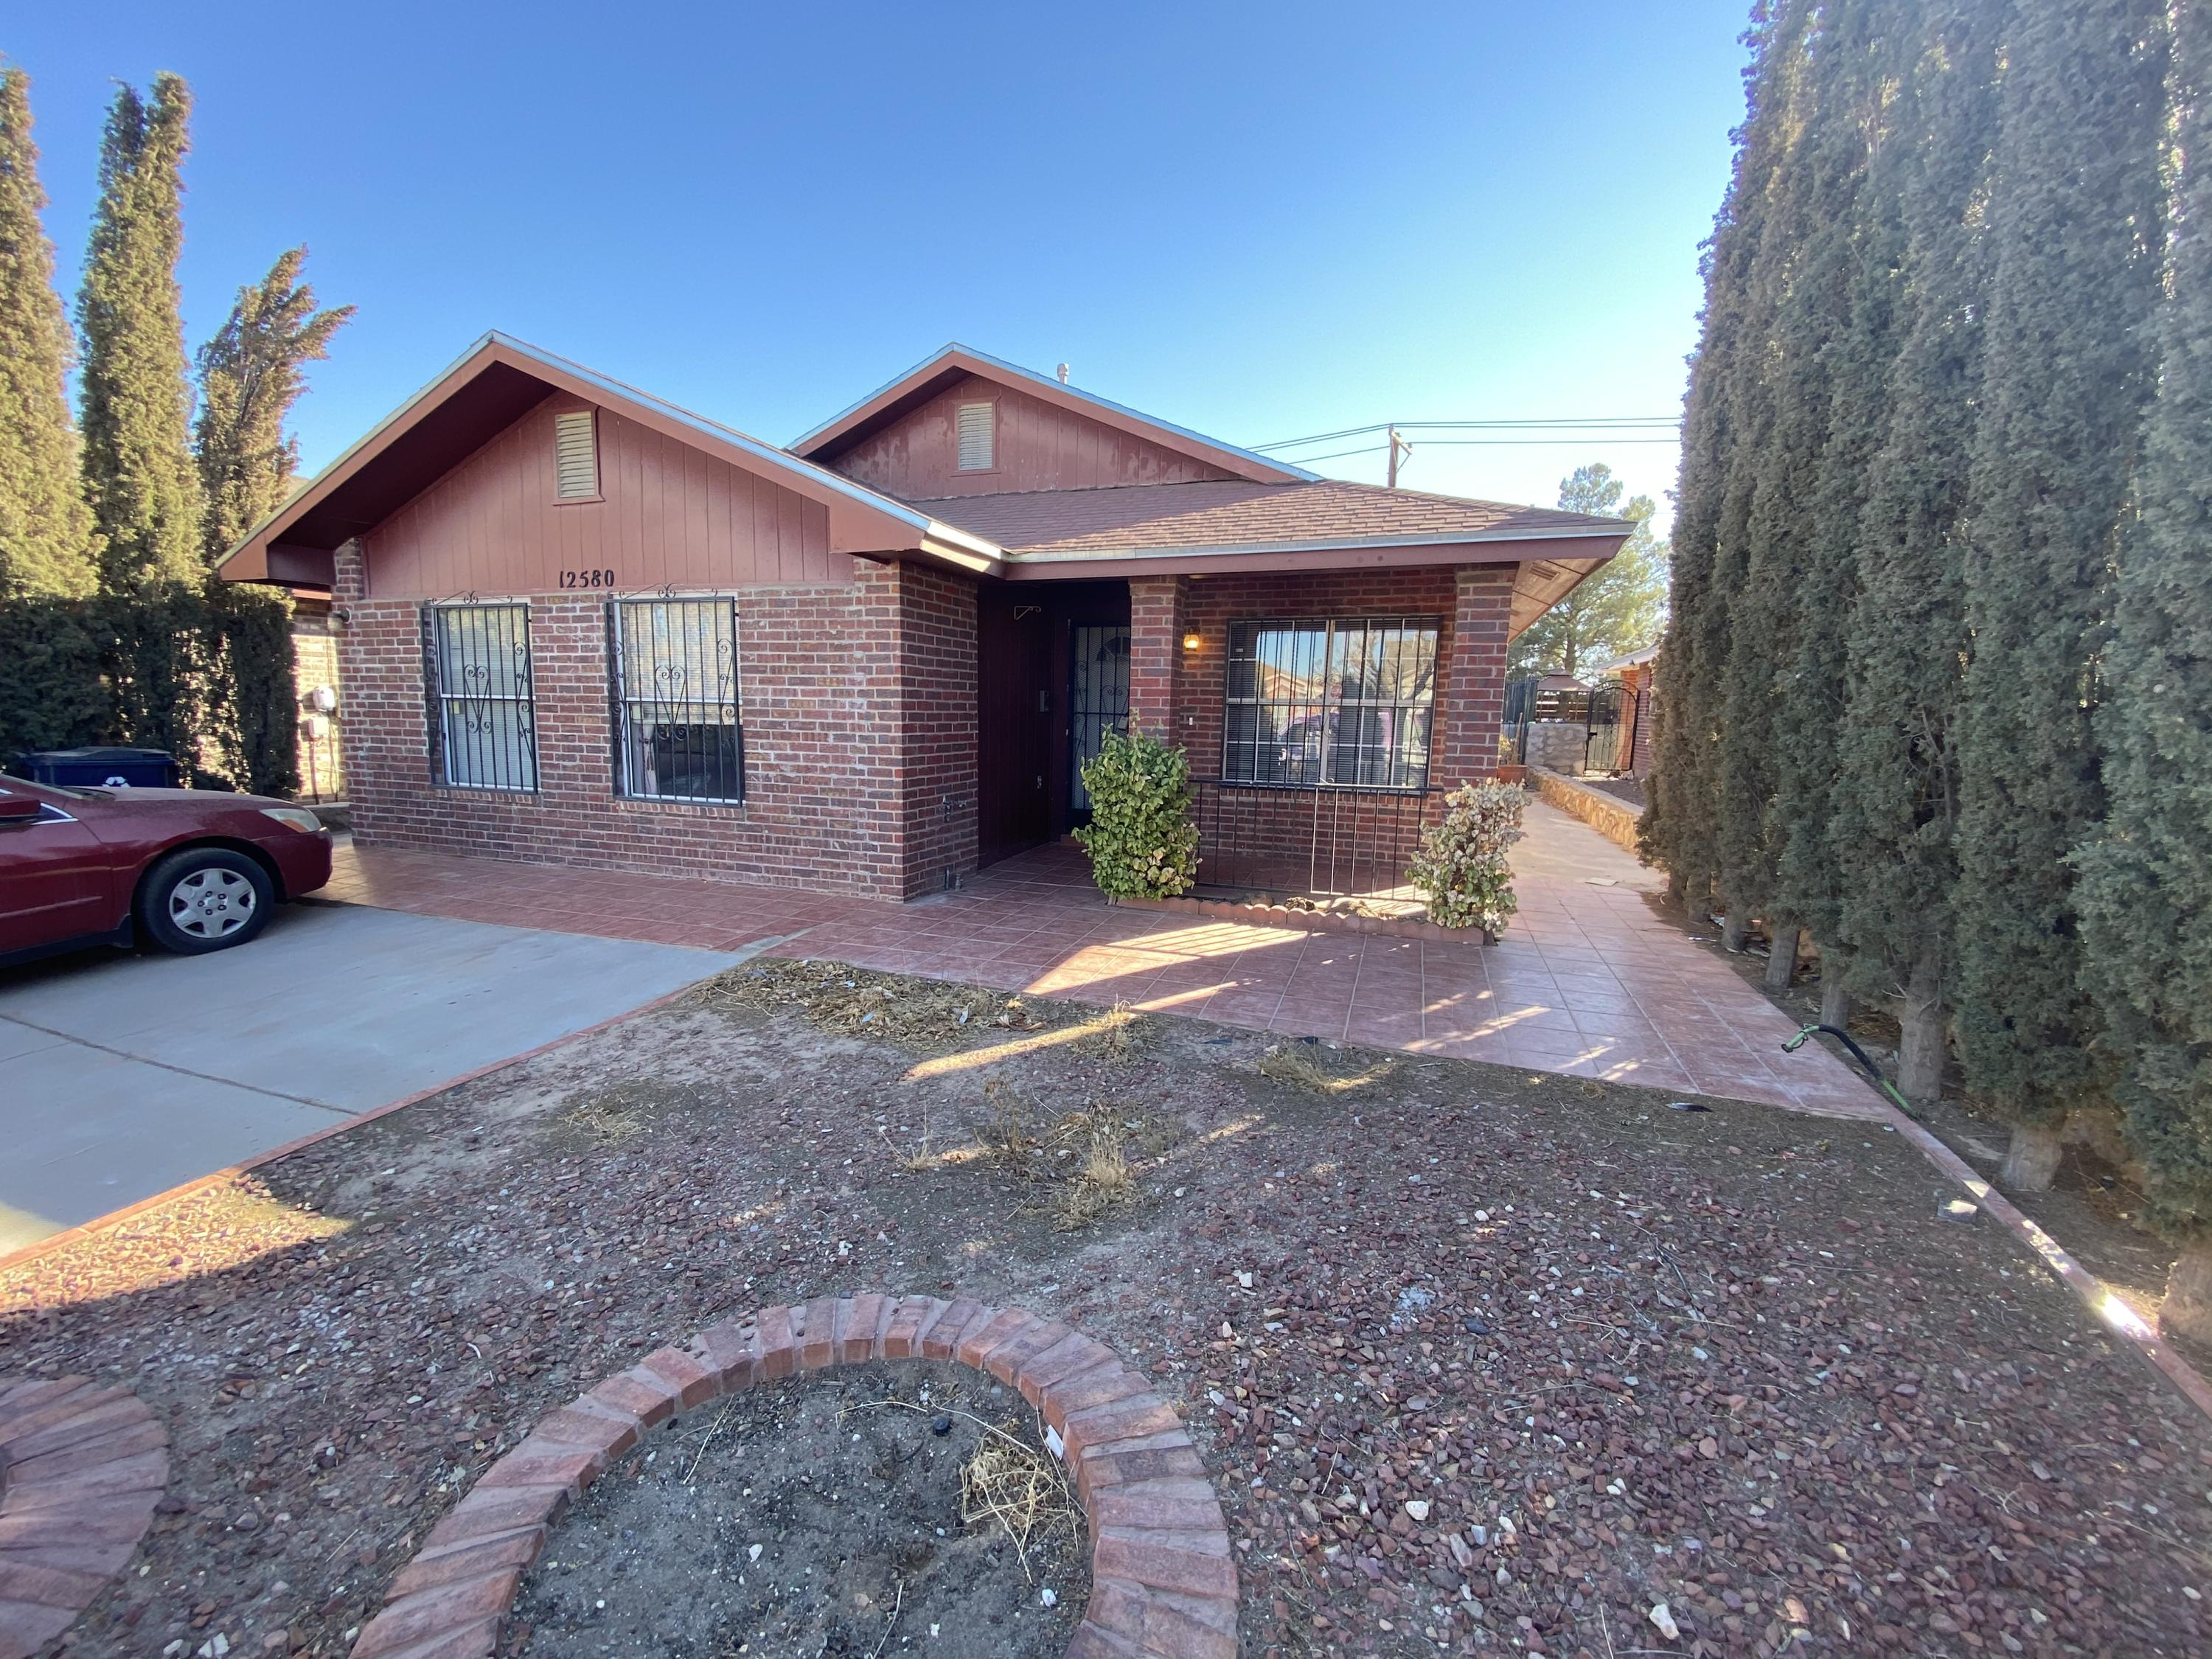 12580 FLORA ALBA, El Paso, Texas 79928, 3 Bedrooms Bedrooms, ,2 BathroomsBathrooms,Residential,For sale,FLORA ALBA,838068